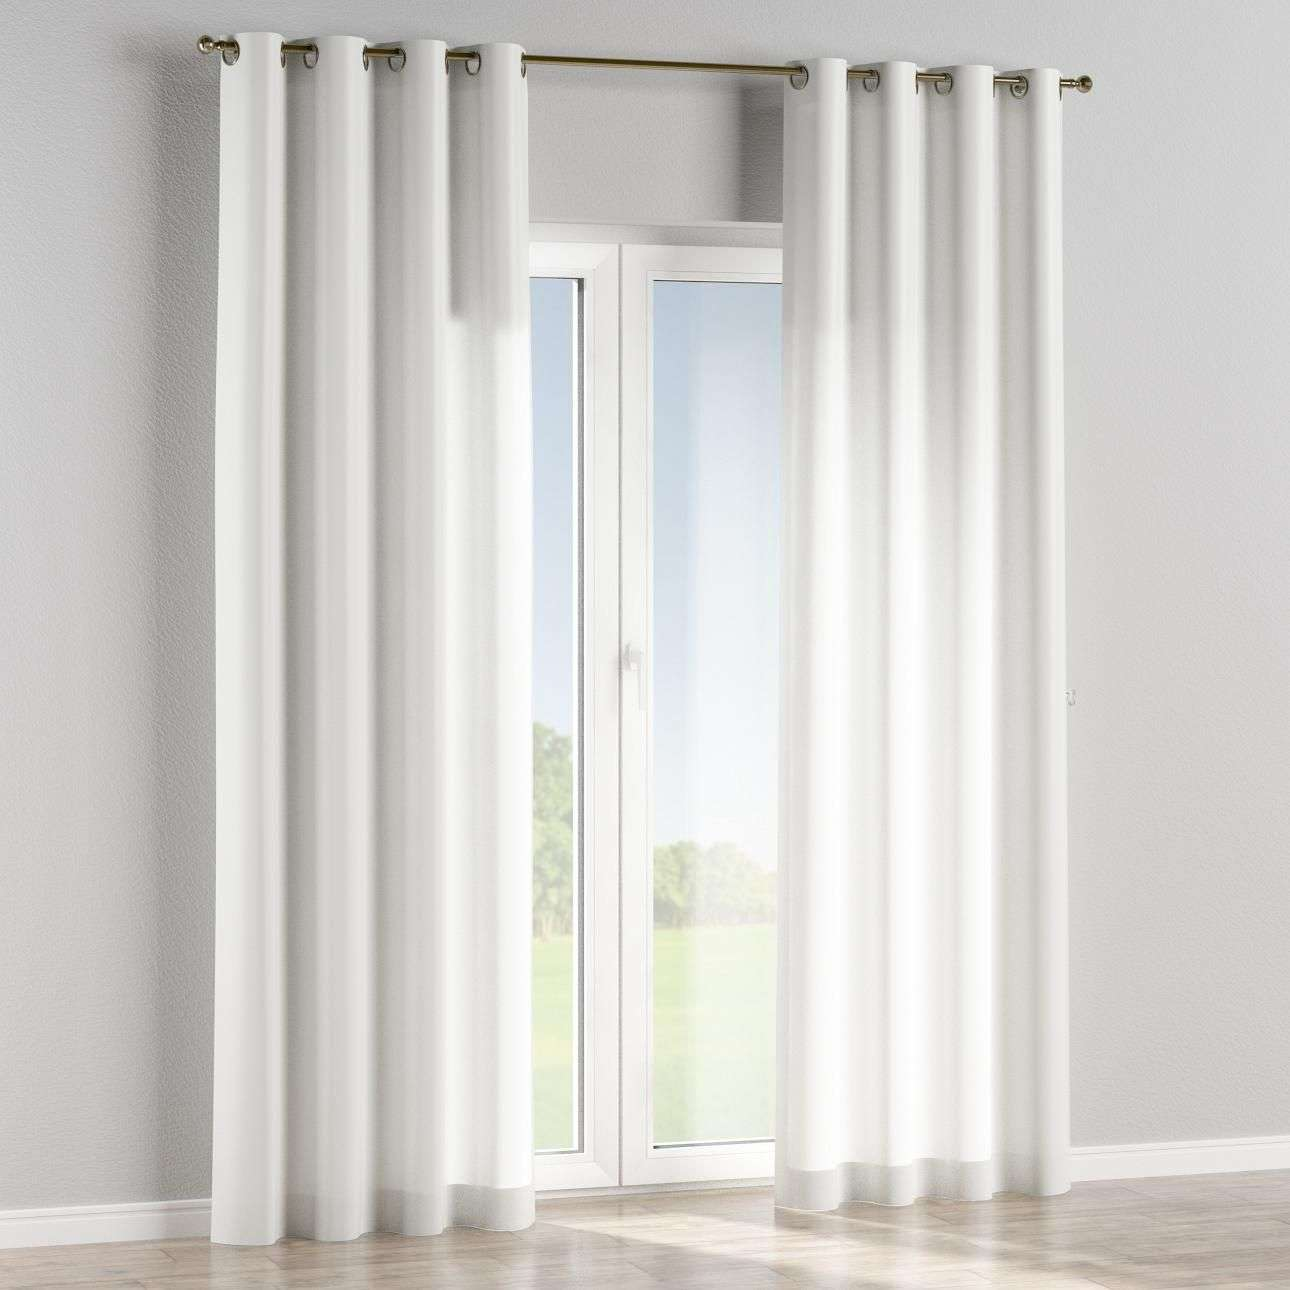 Eyelet lined curtains in collection Jupiter, fabric: 127-04